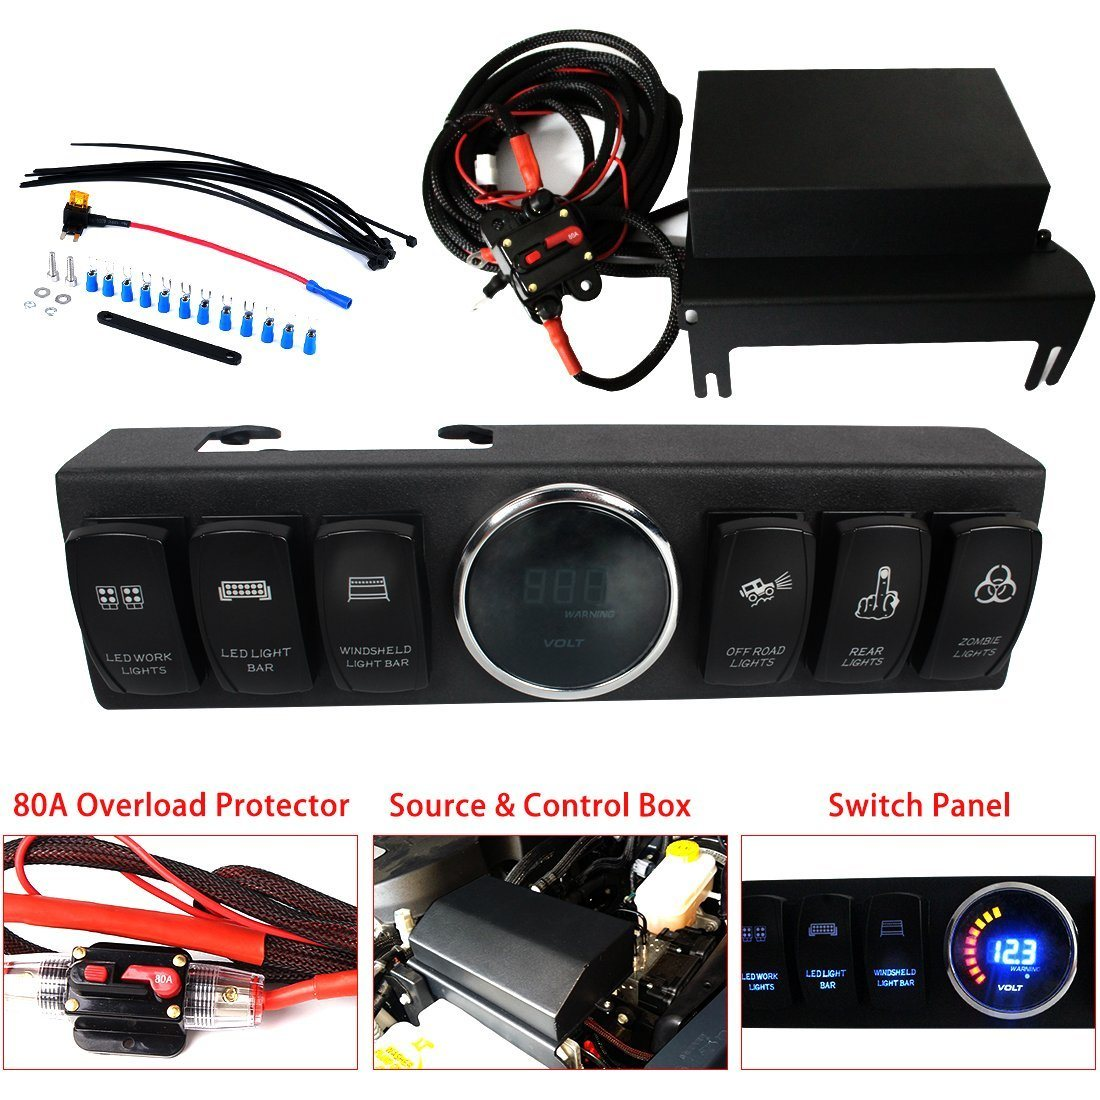 hight resolution of 2009 2016 jeep wrangler jk jku control box 6 switch pod electronic relay system module panel wiring harness kit with rocker switch mount power up to 6